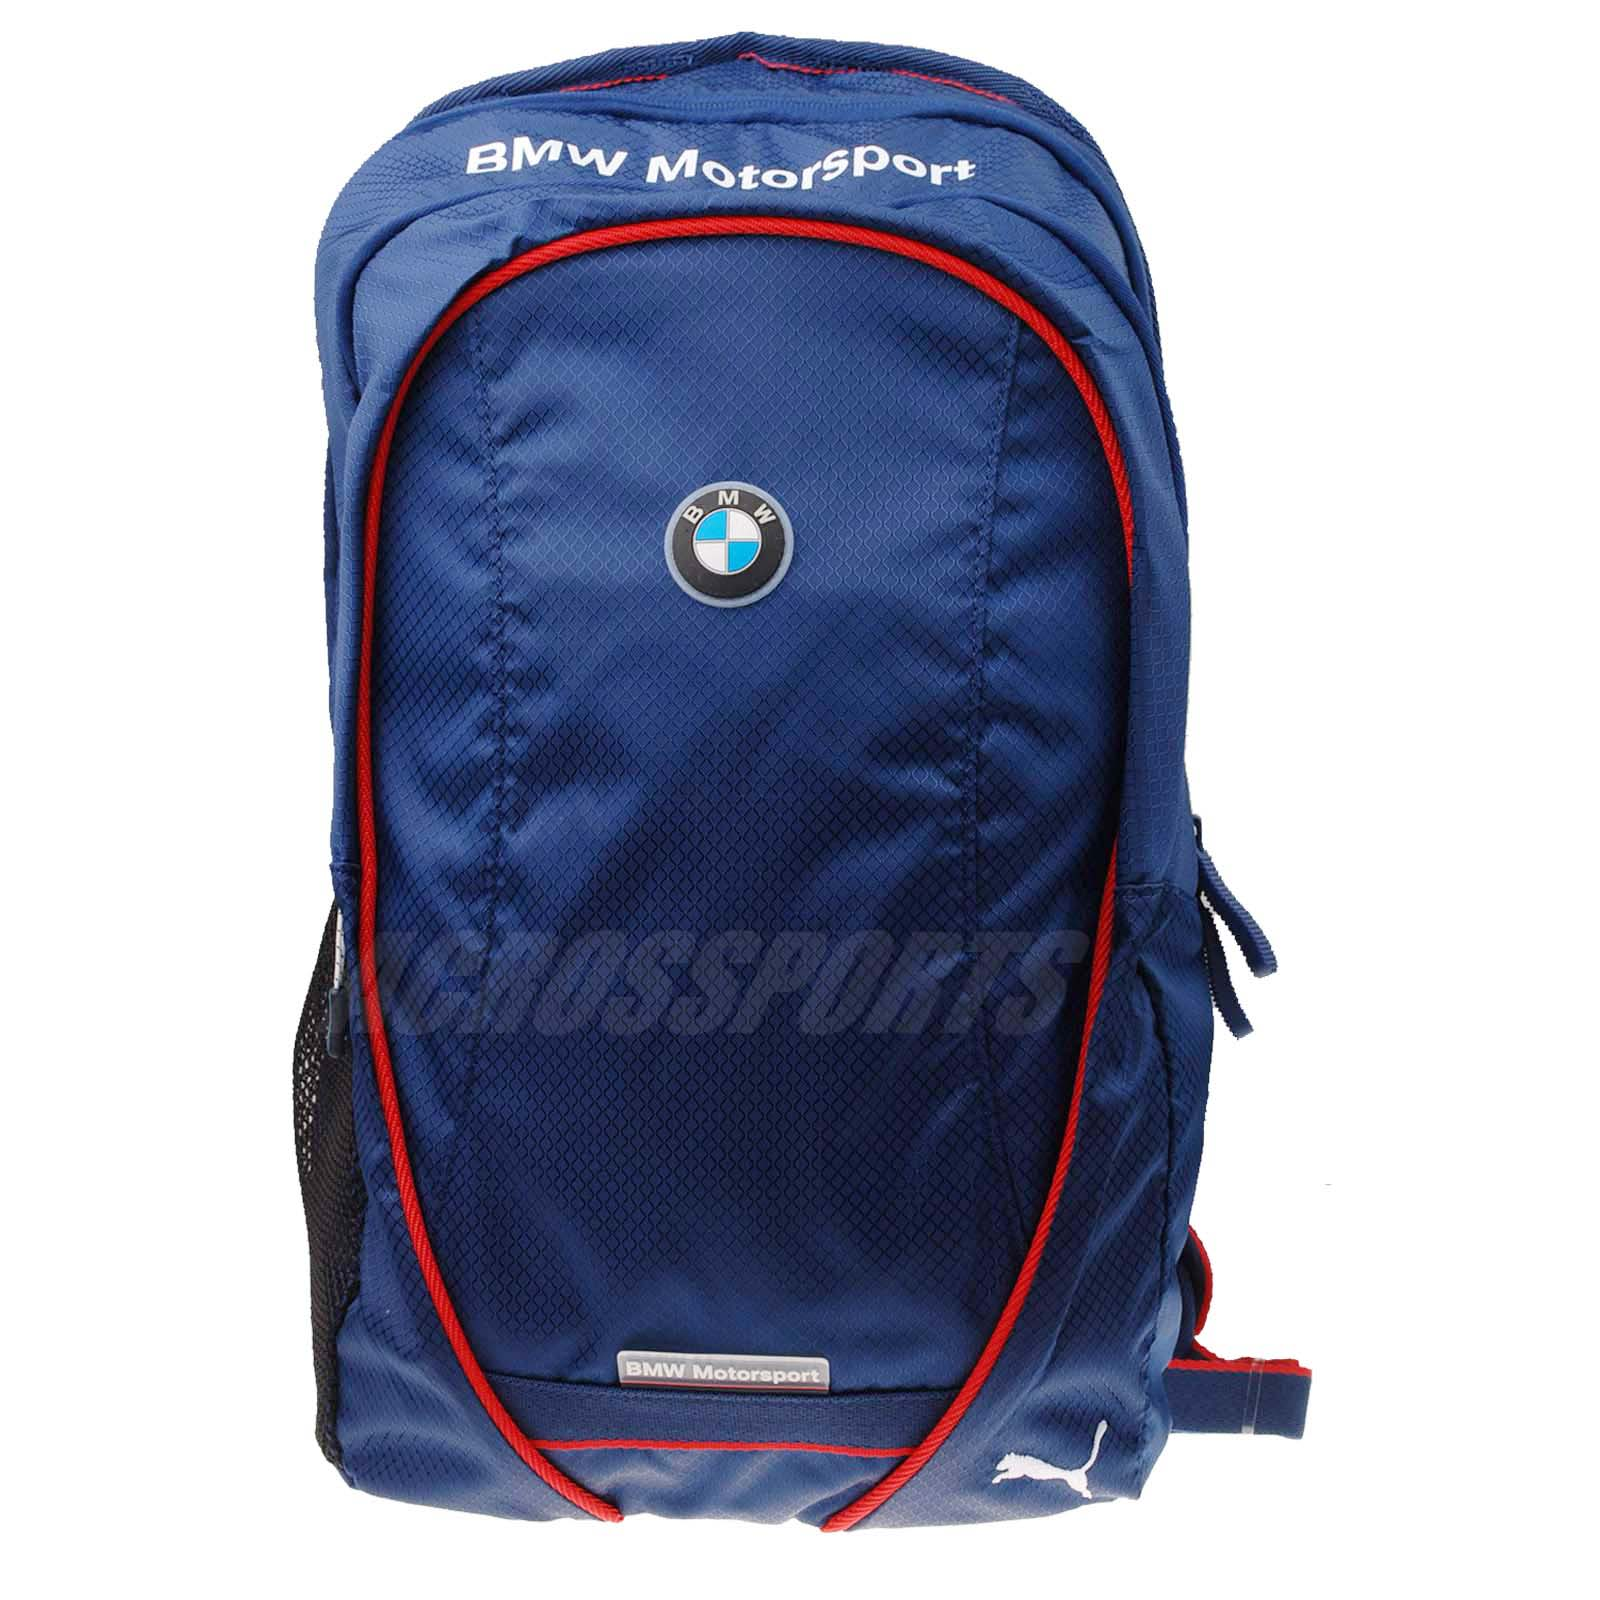 puma bmw motorsport multifunction backpack navy red bag. Black Bedroom Furniture Sets. Home Design Ideas